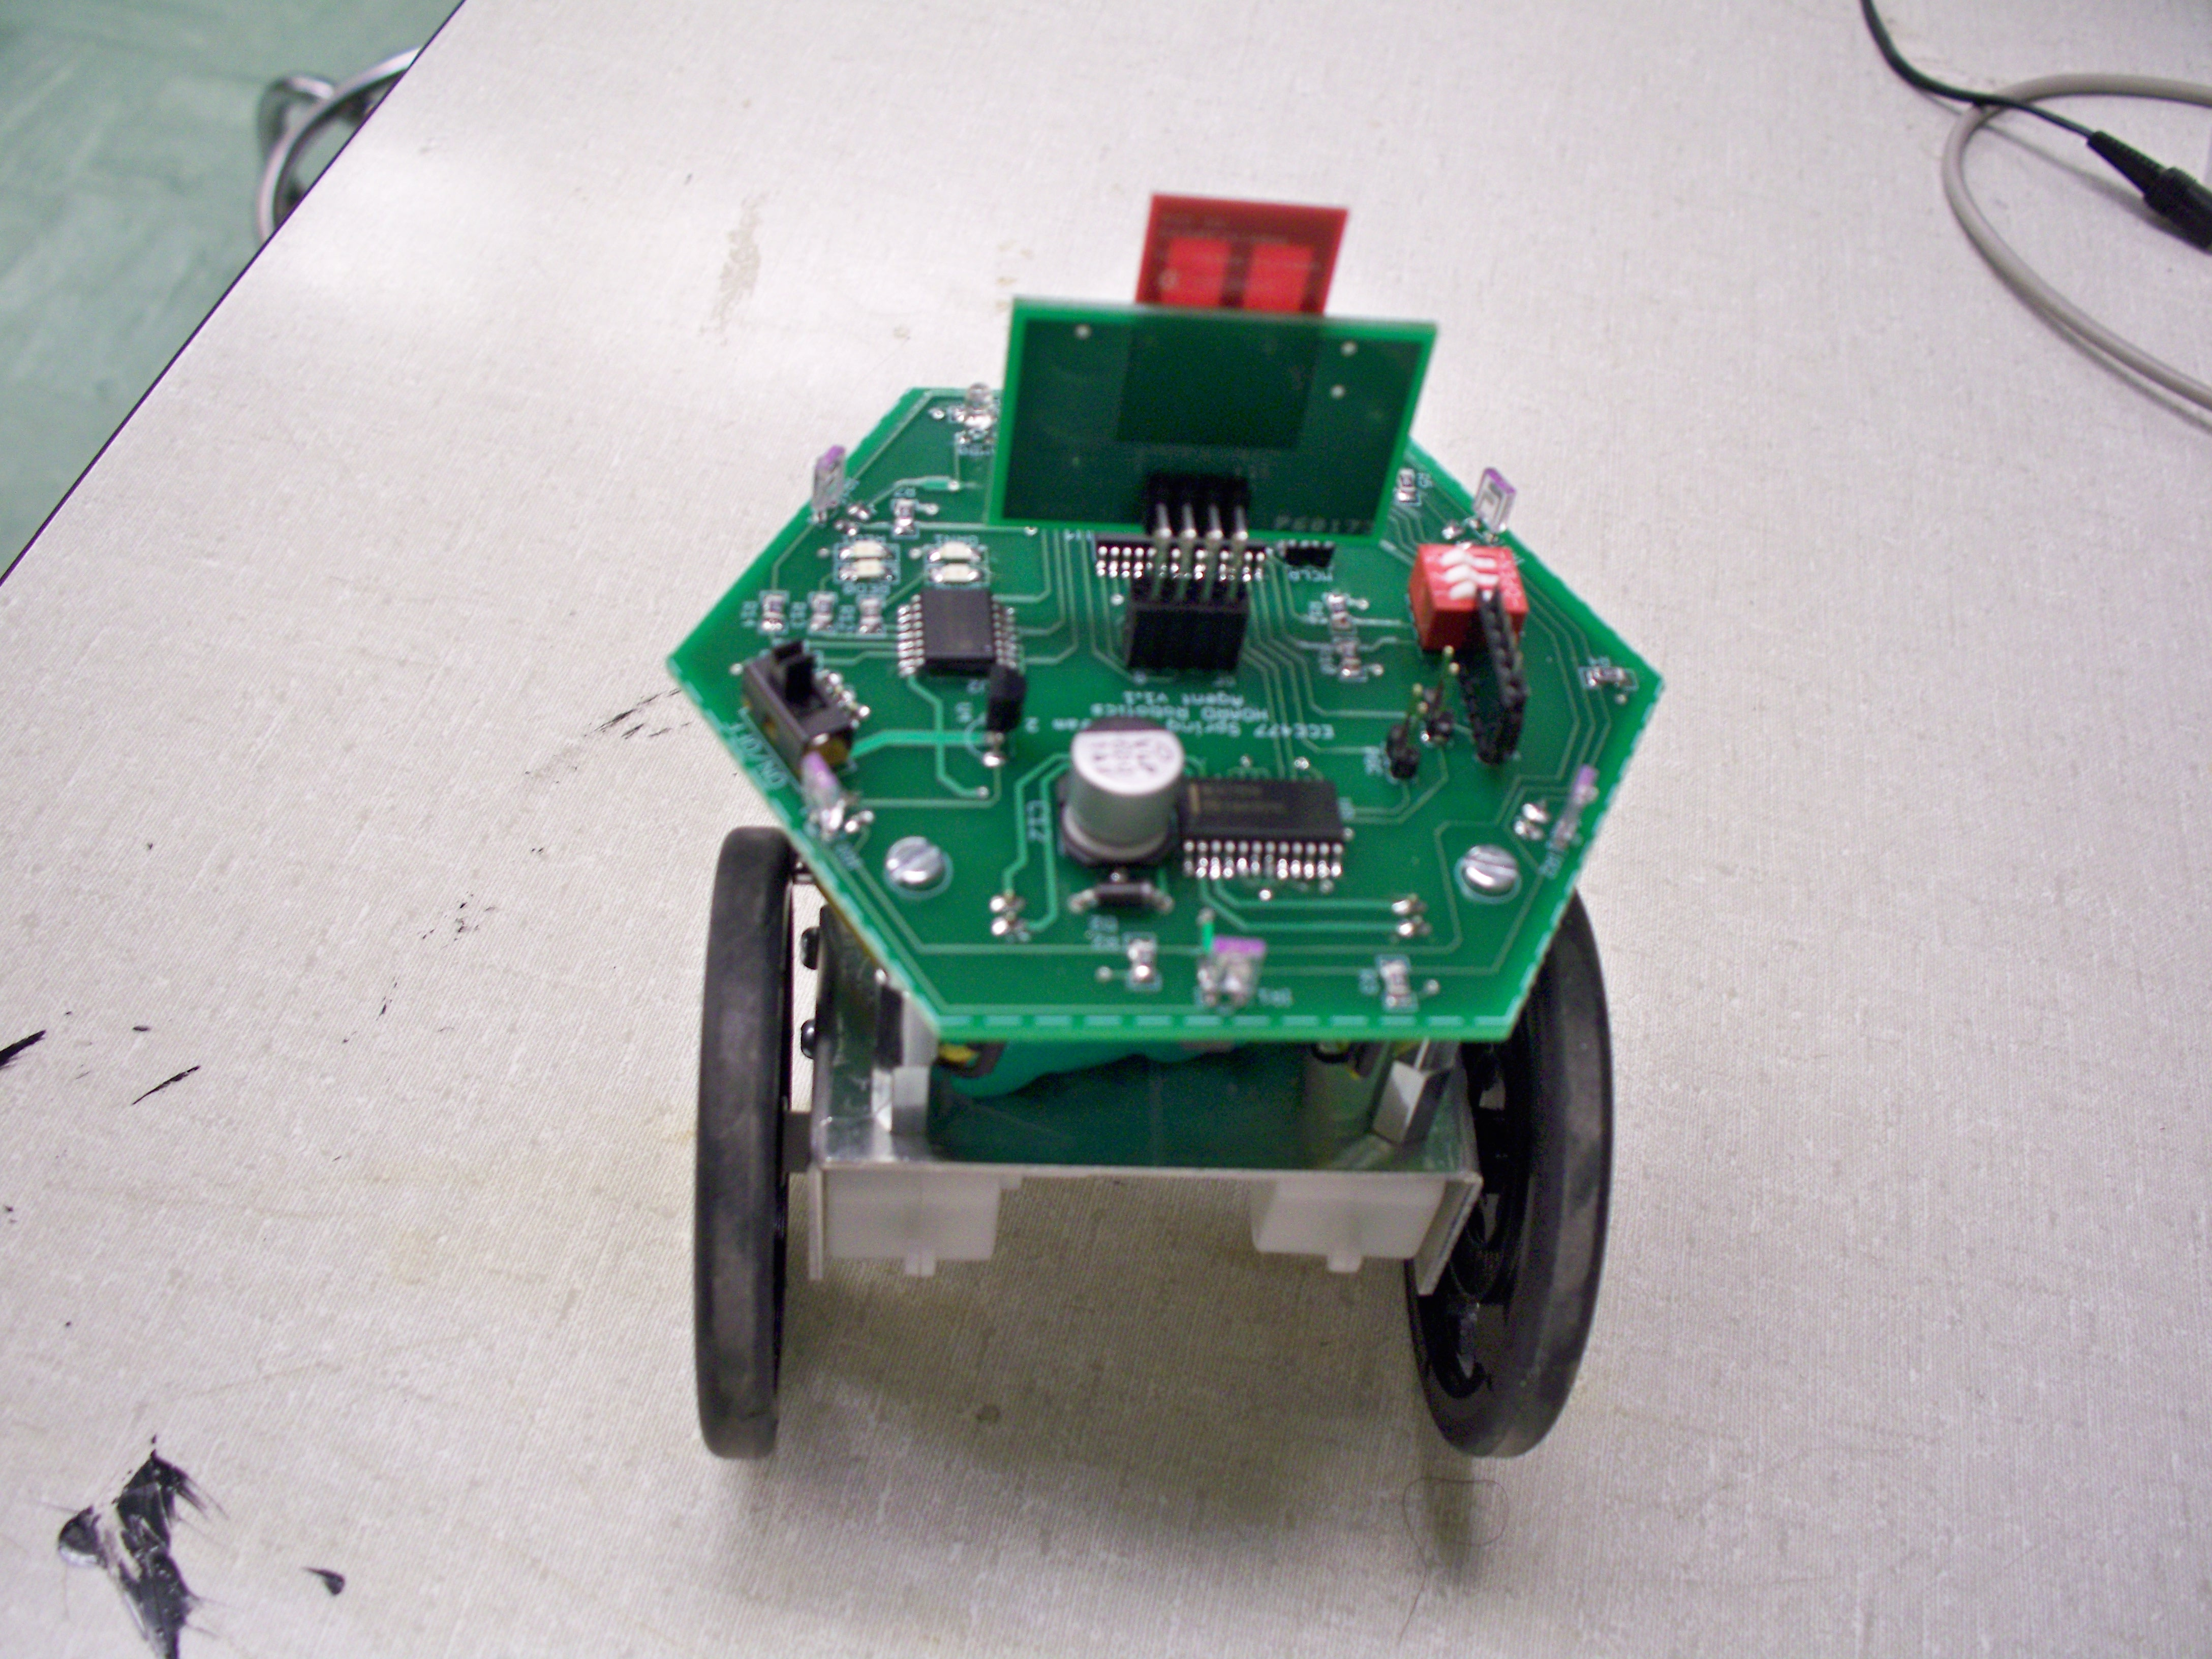 Trentons Lab Notebook Controller Determine The Circuit For Ambient Light Sensor Week 8 And Sensors To Design Built A Setup Test Robots Ability Detect Avoid Objects Demonstration Video